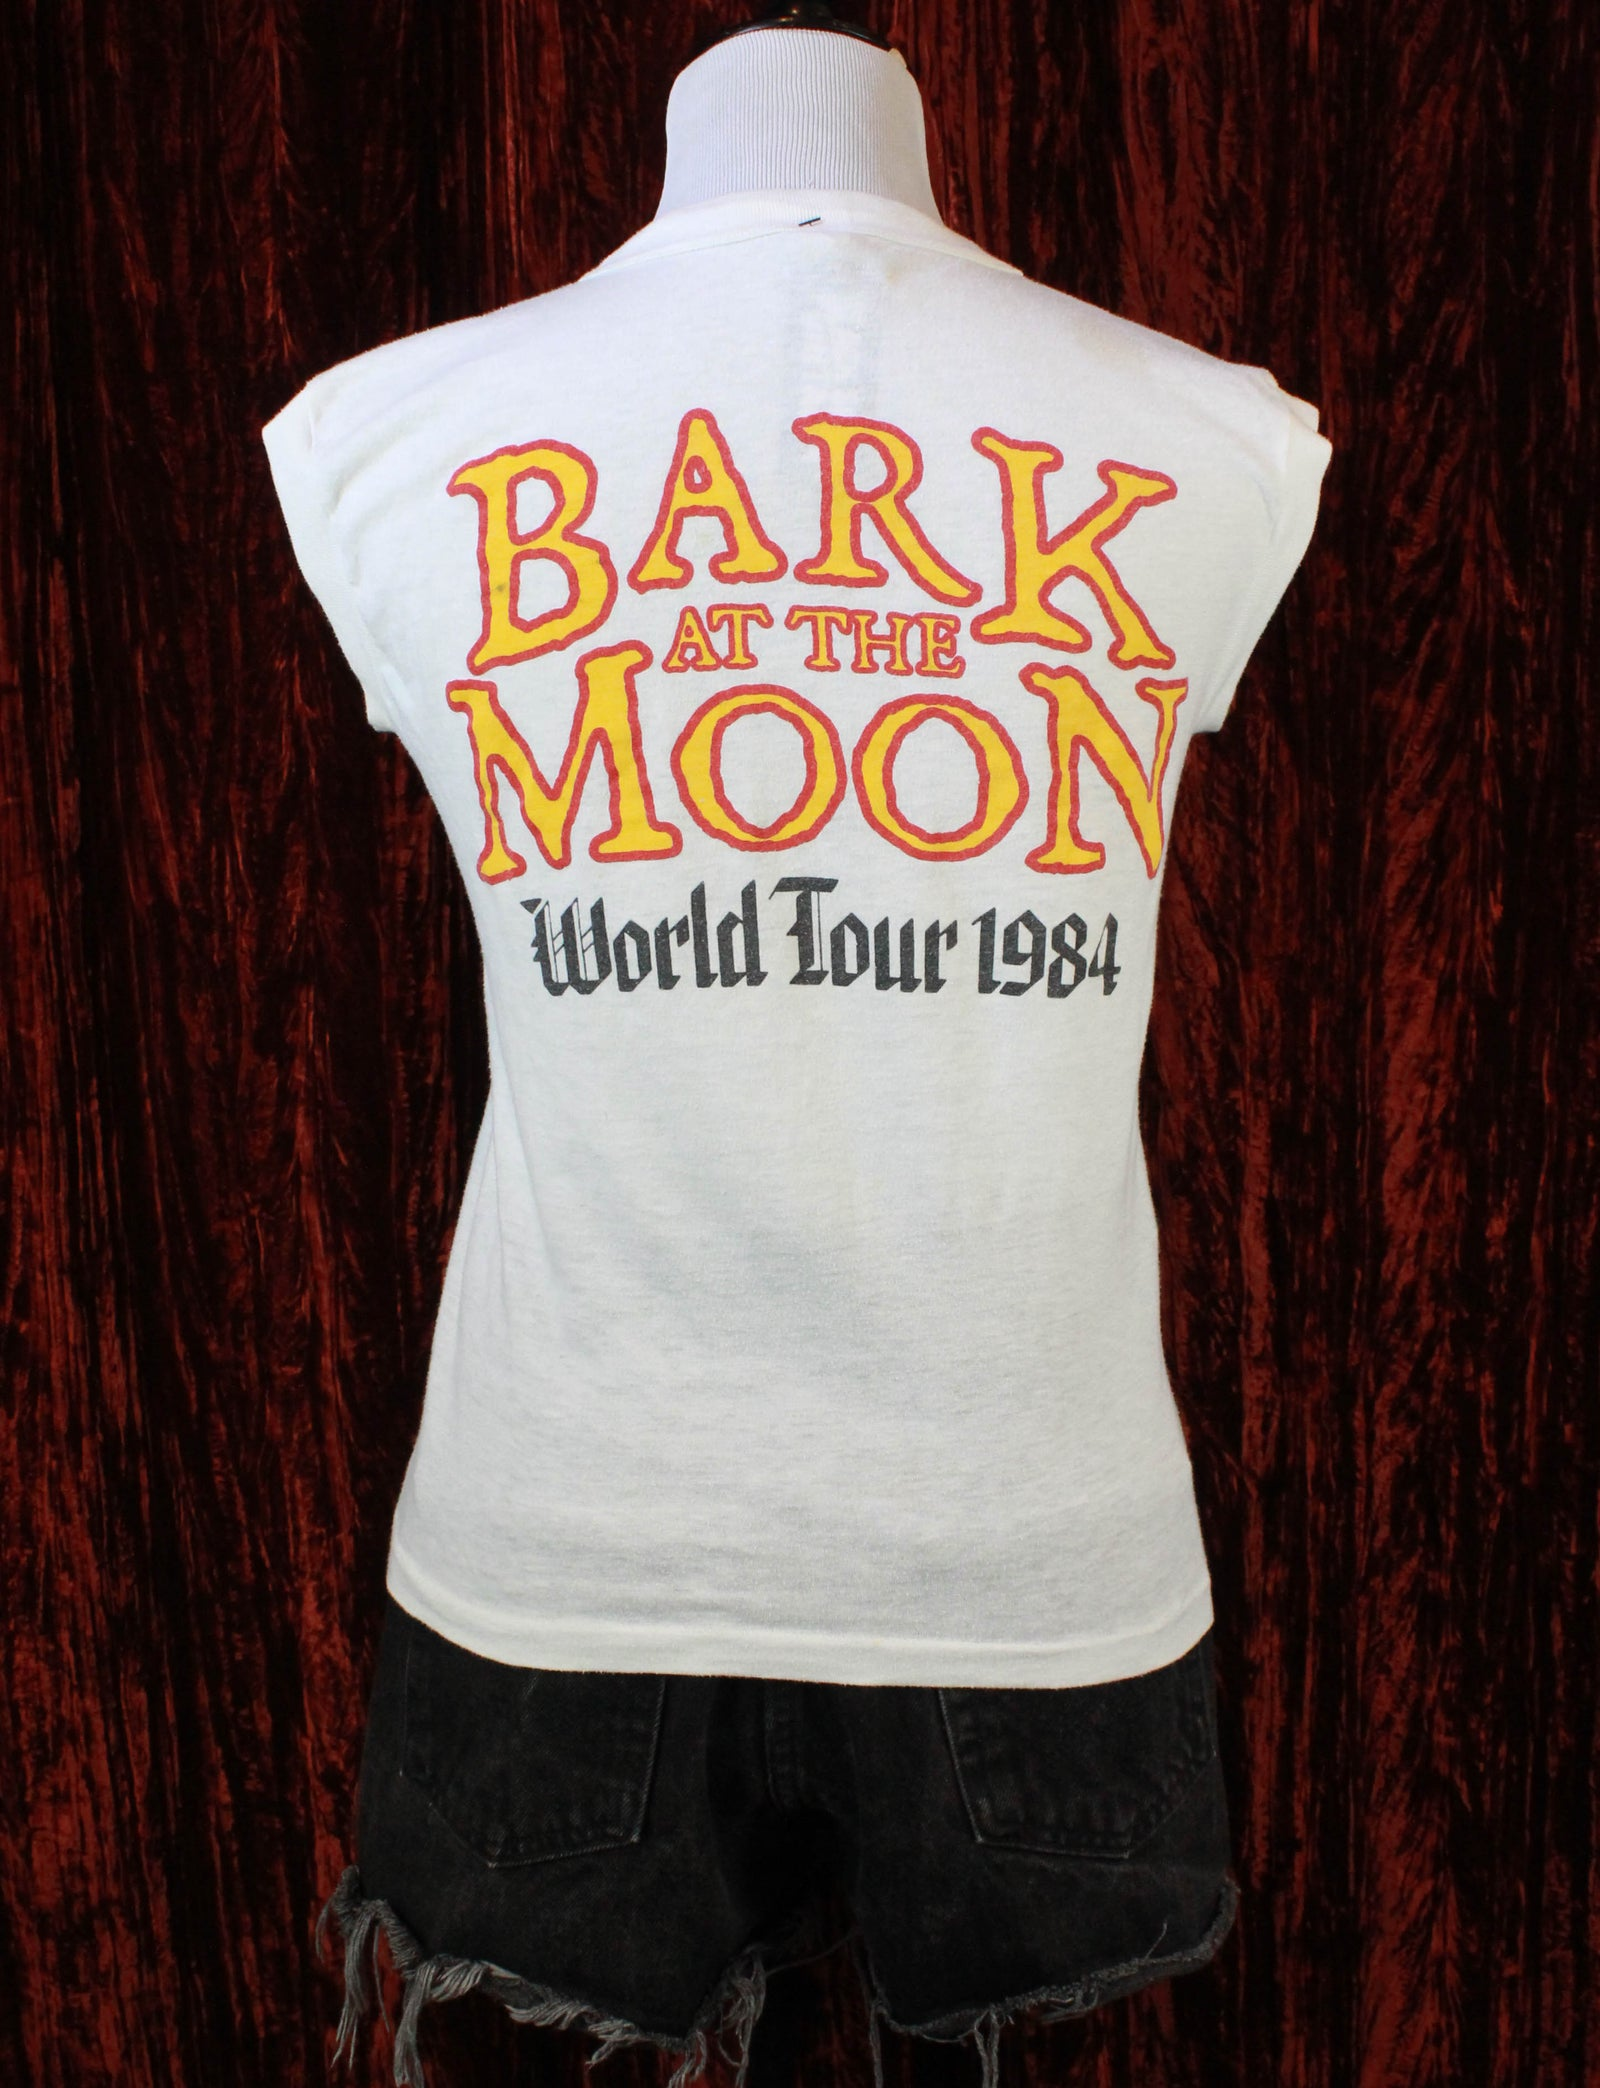 Vintage Ozzy Osbourne Concert T Shirt 1984 Ozzy Wants You Bark At The Moon World Tour Muscle Tee - Small